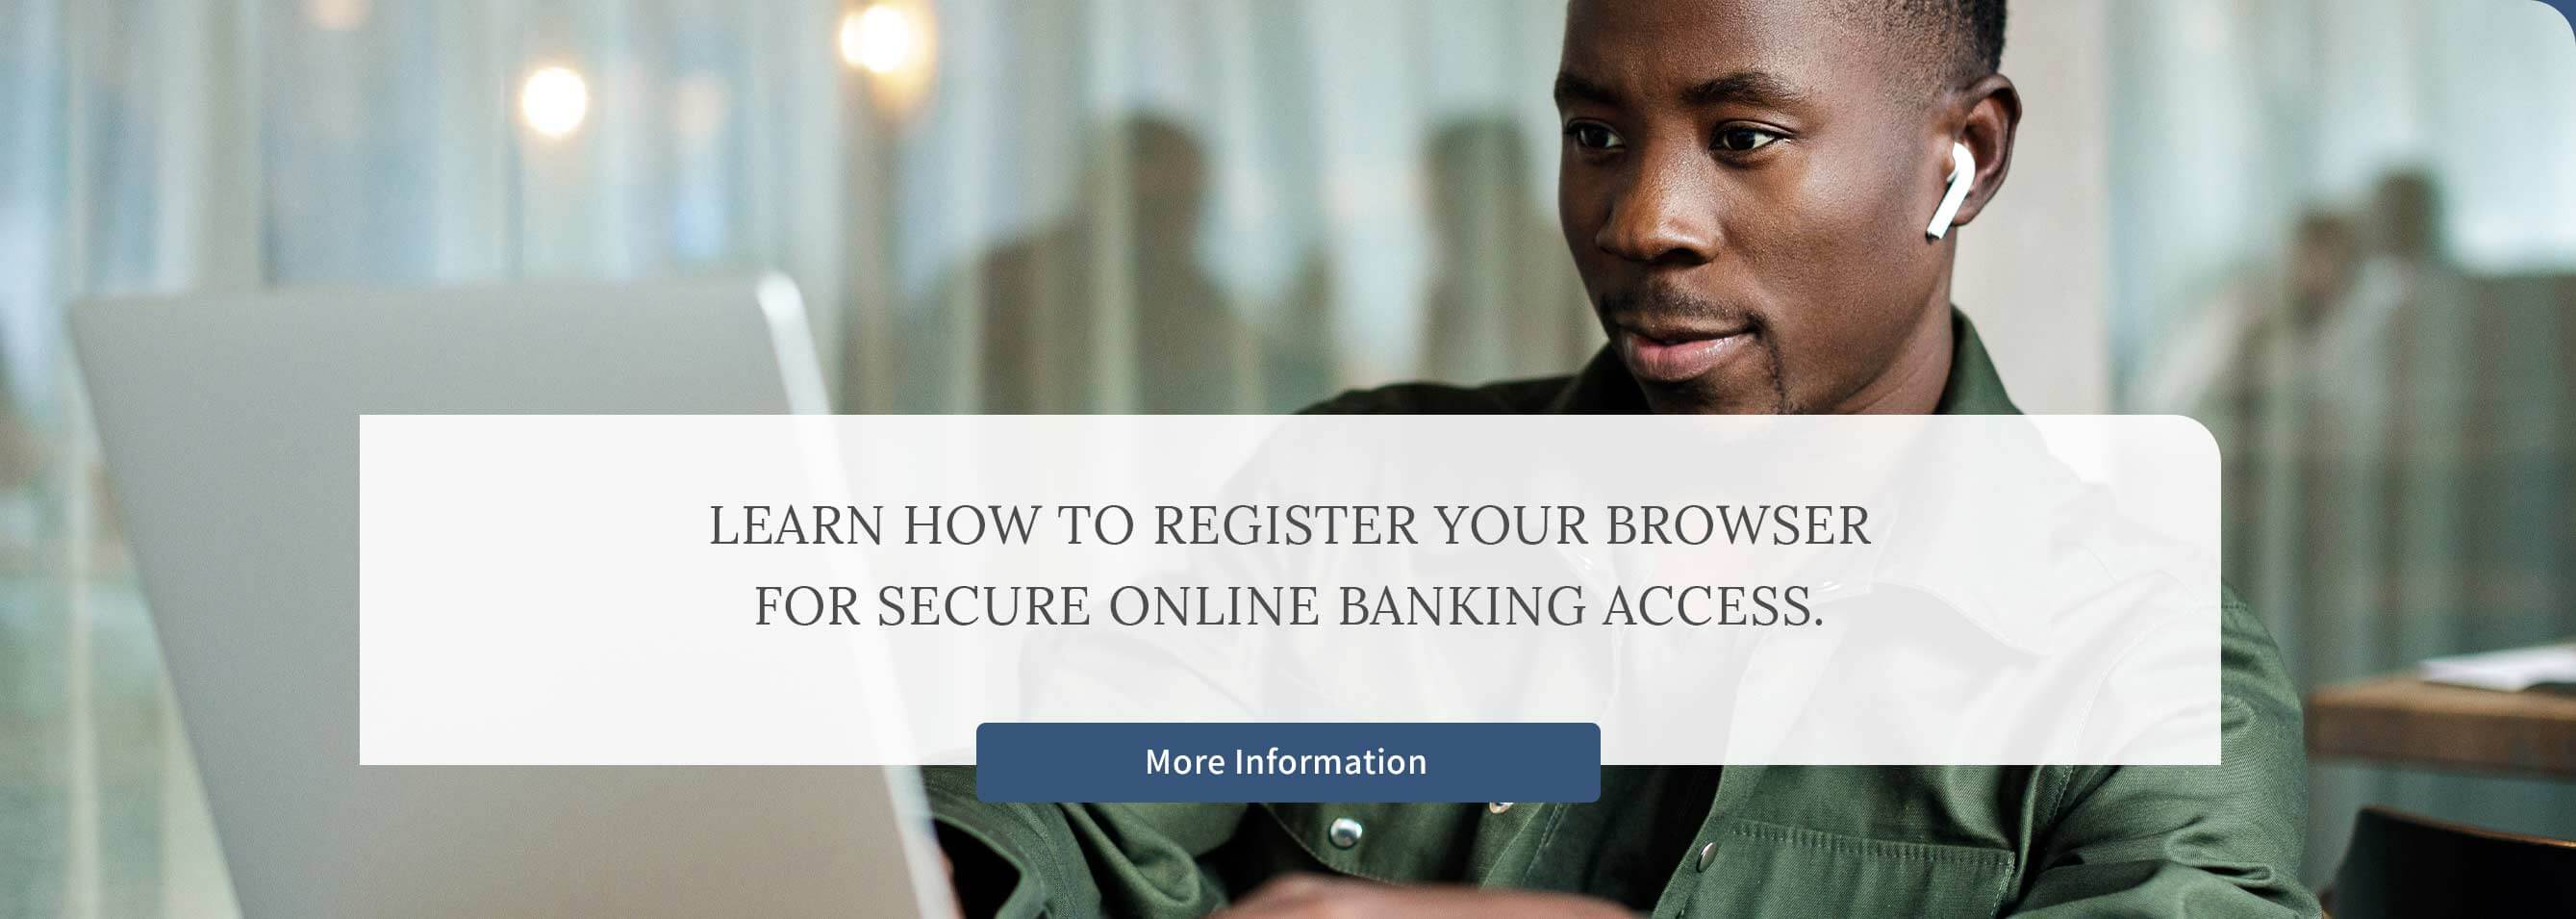 Learn how to Register your Browserfor Secure Online Banking Access. More Information